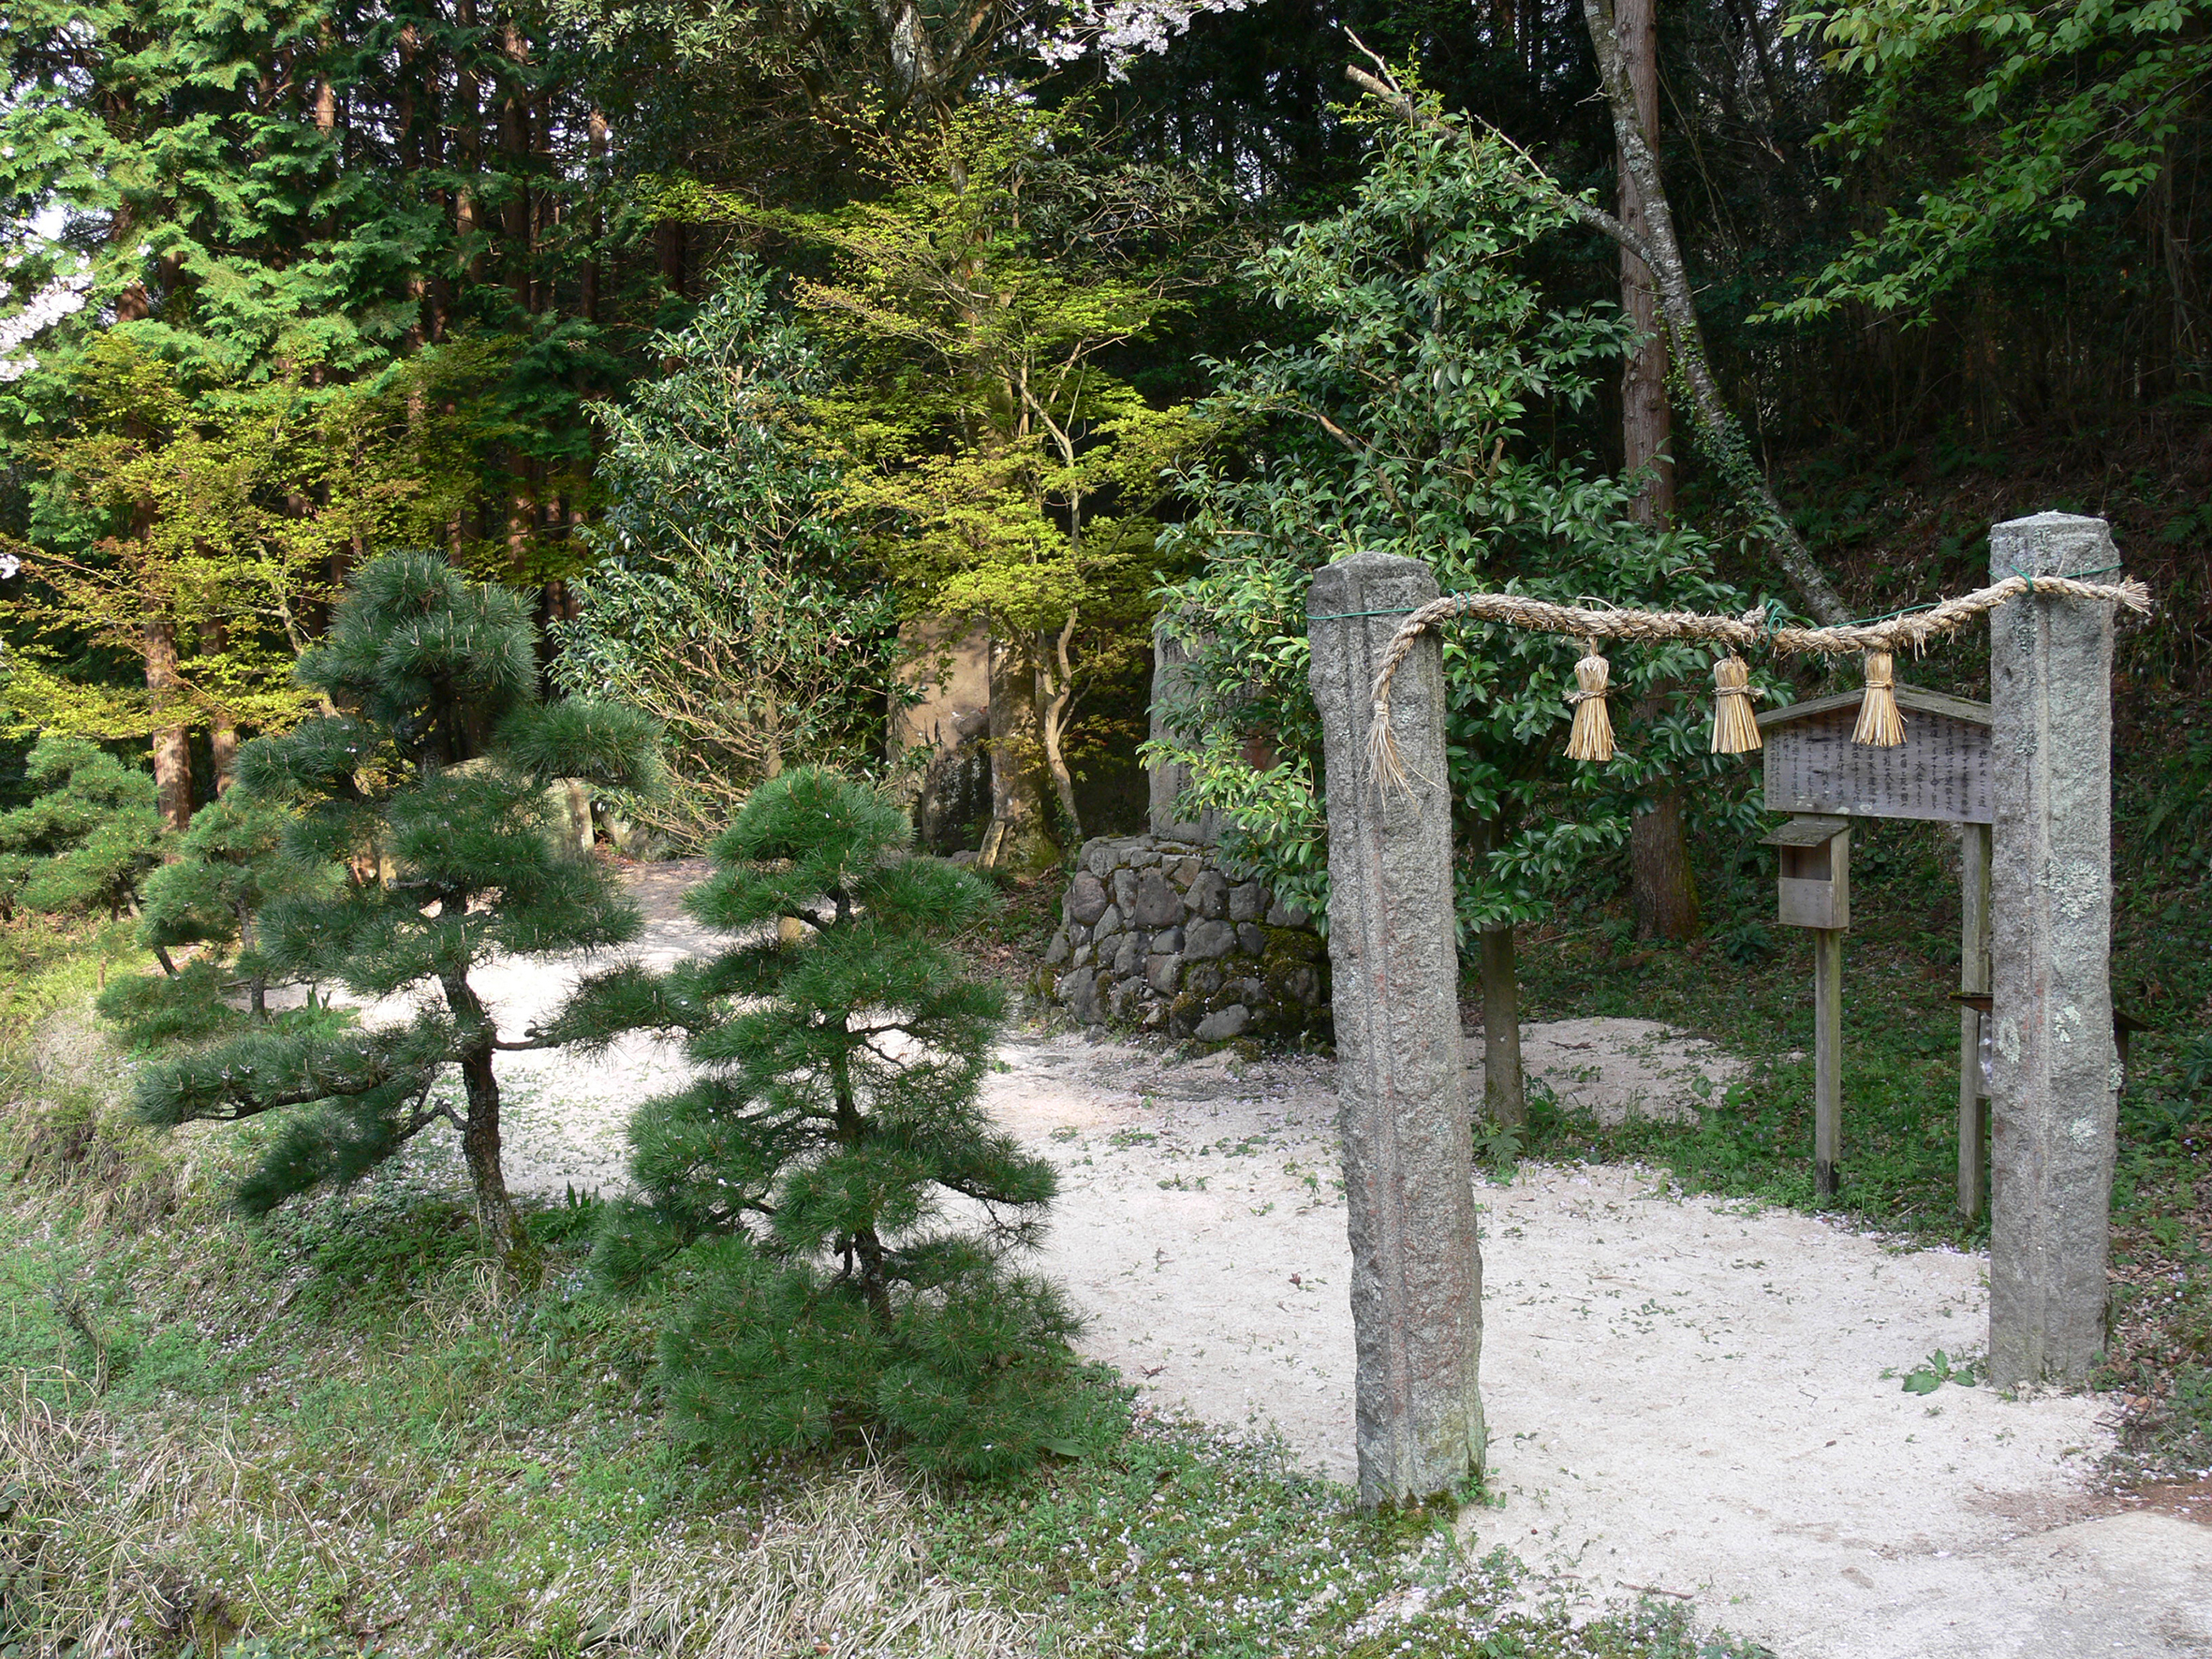 Ihuya Hill in Matsue, Shimane Prefecture.  Is this the exit from Yomi no Kuni?